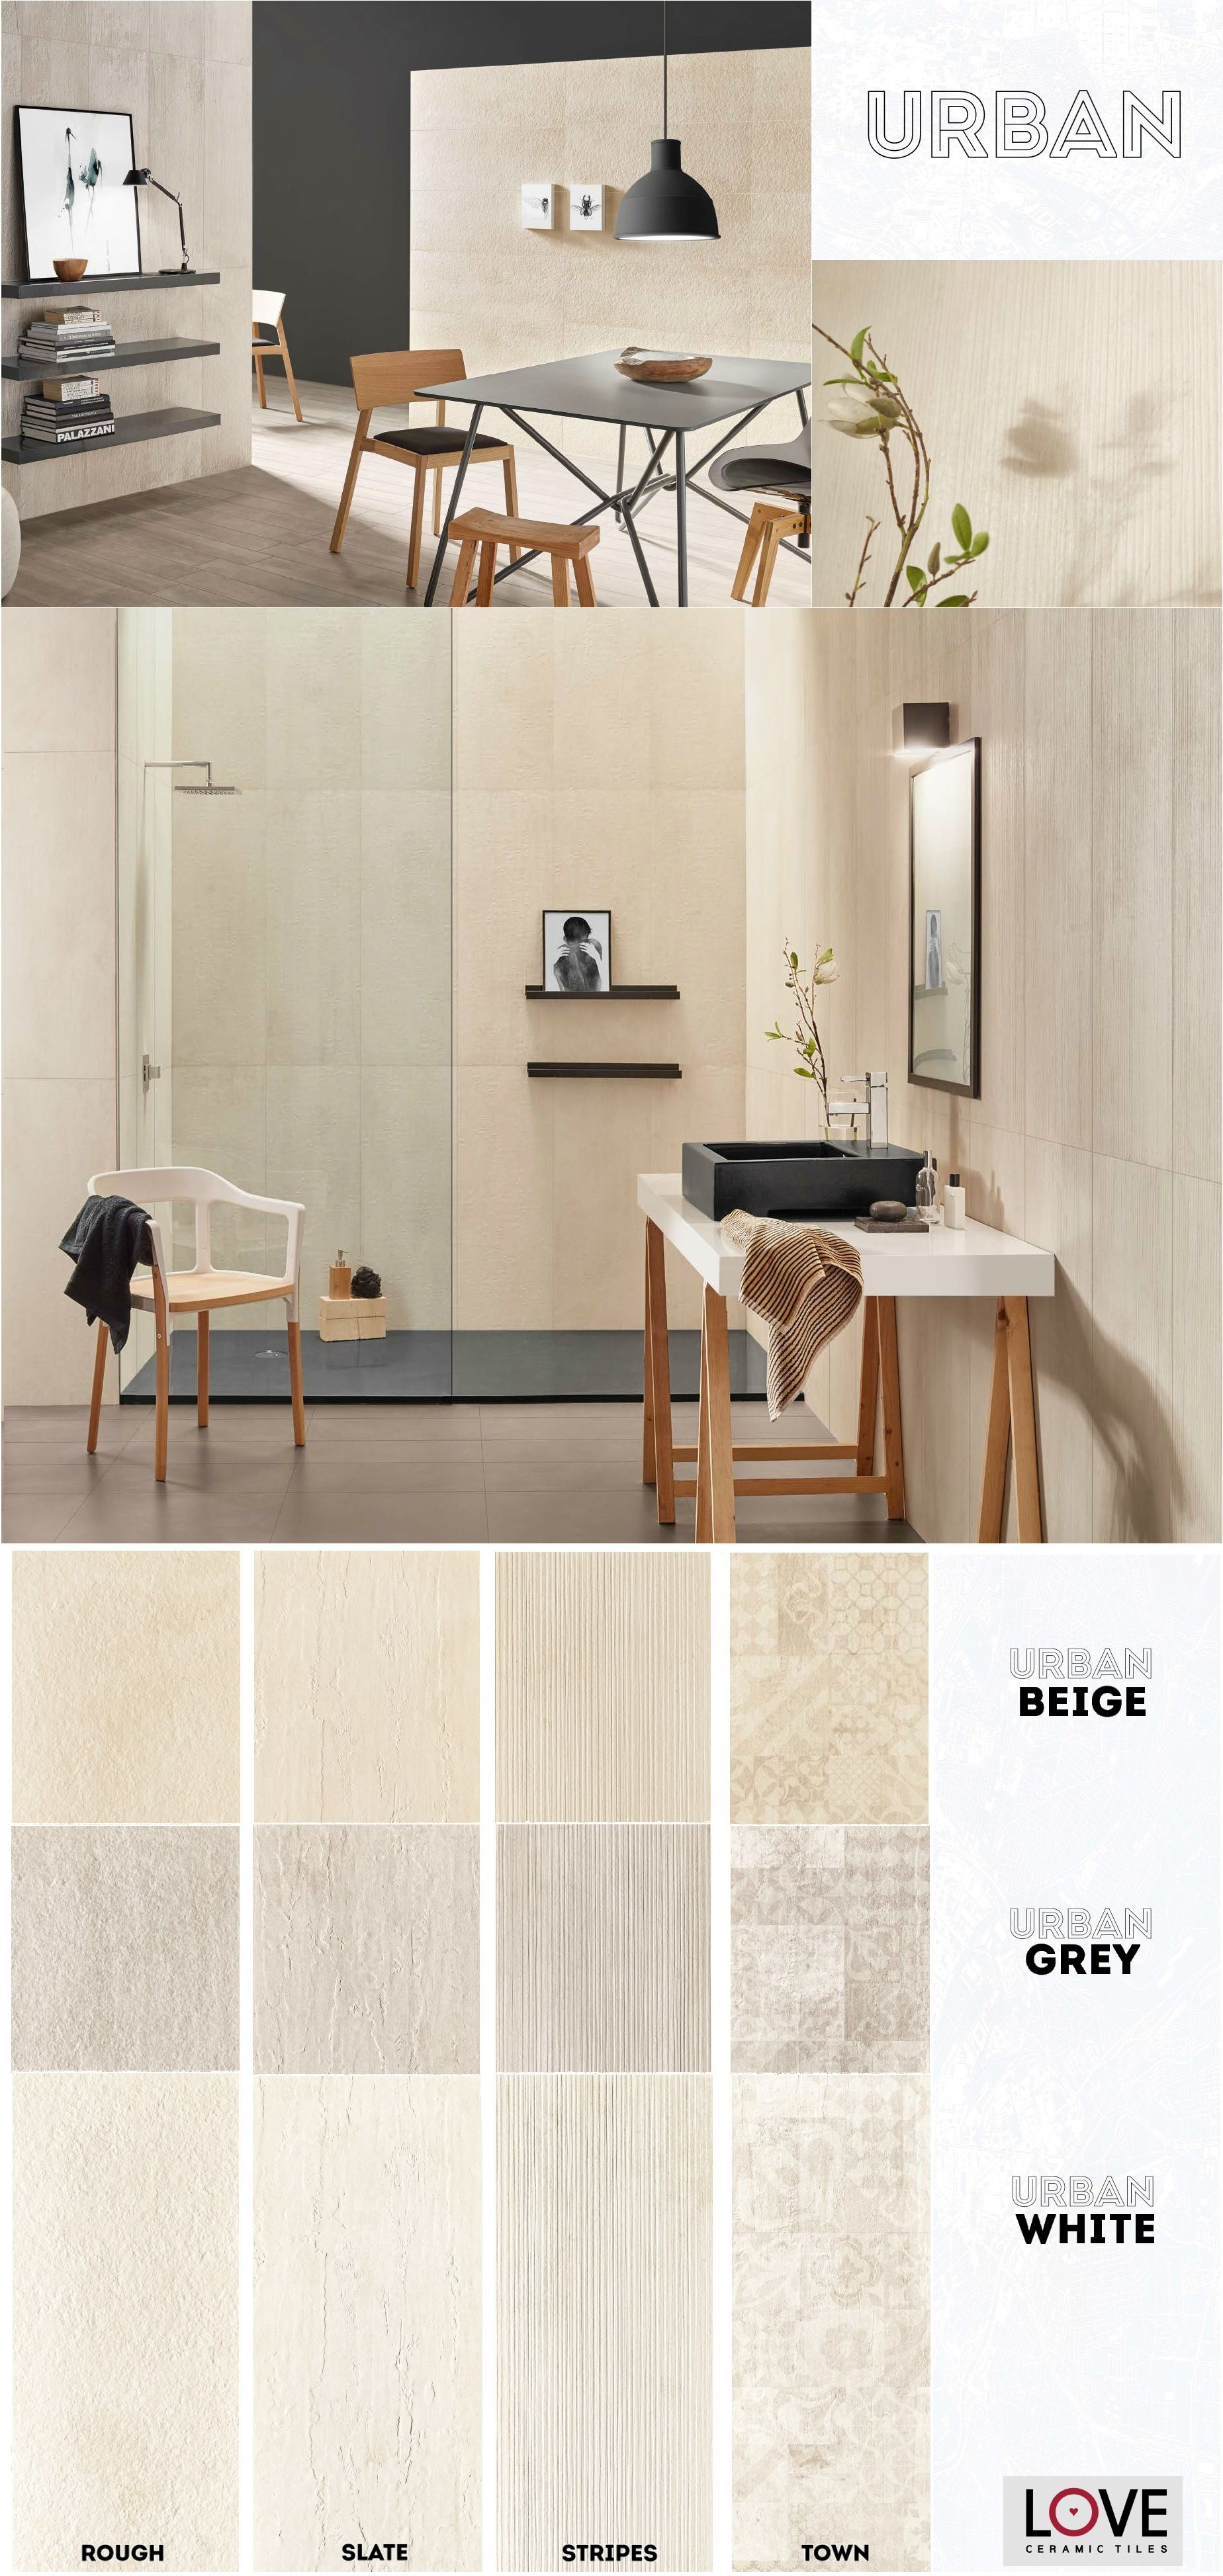 Urban collection rough slate stripes and town series for Carrelage urban grey